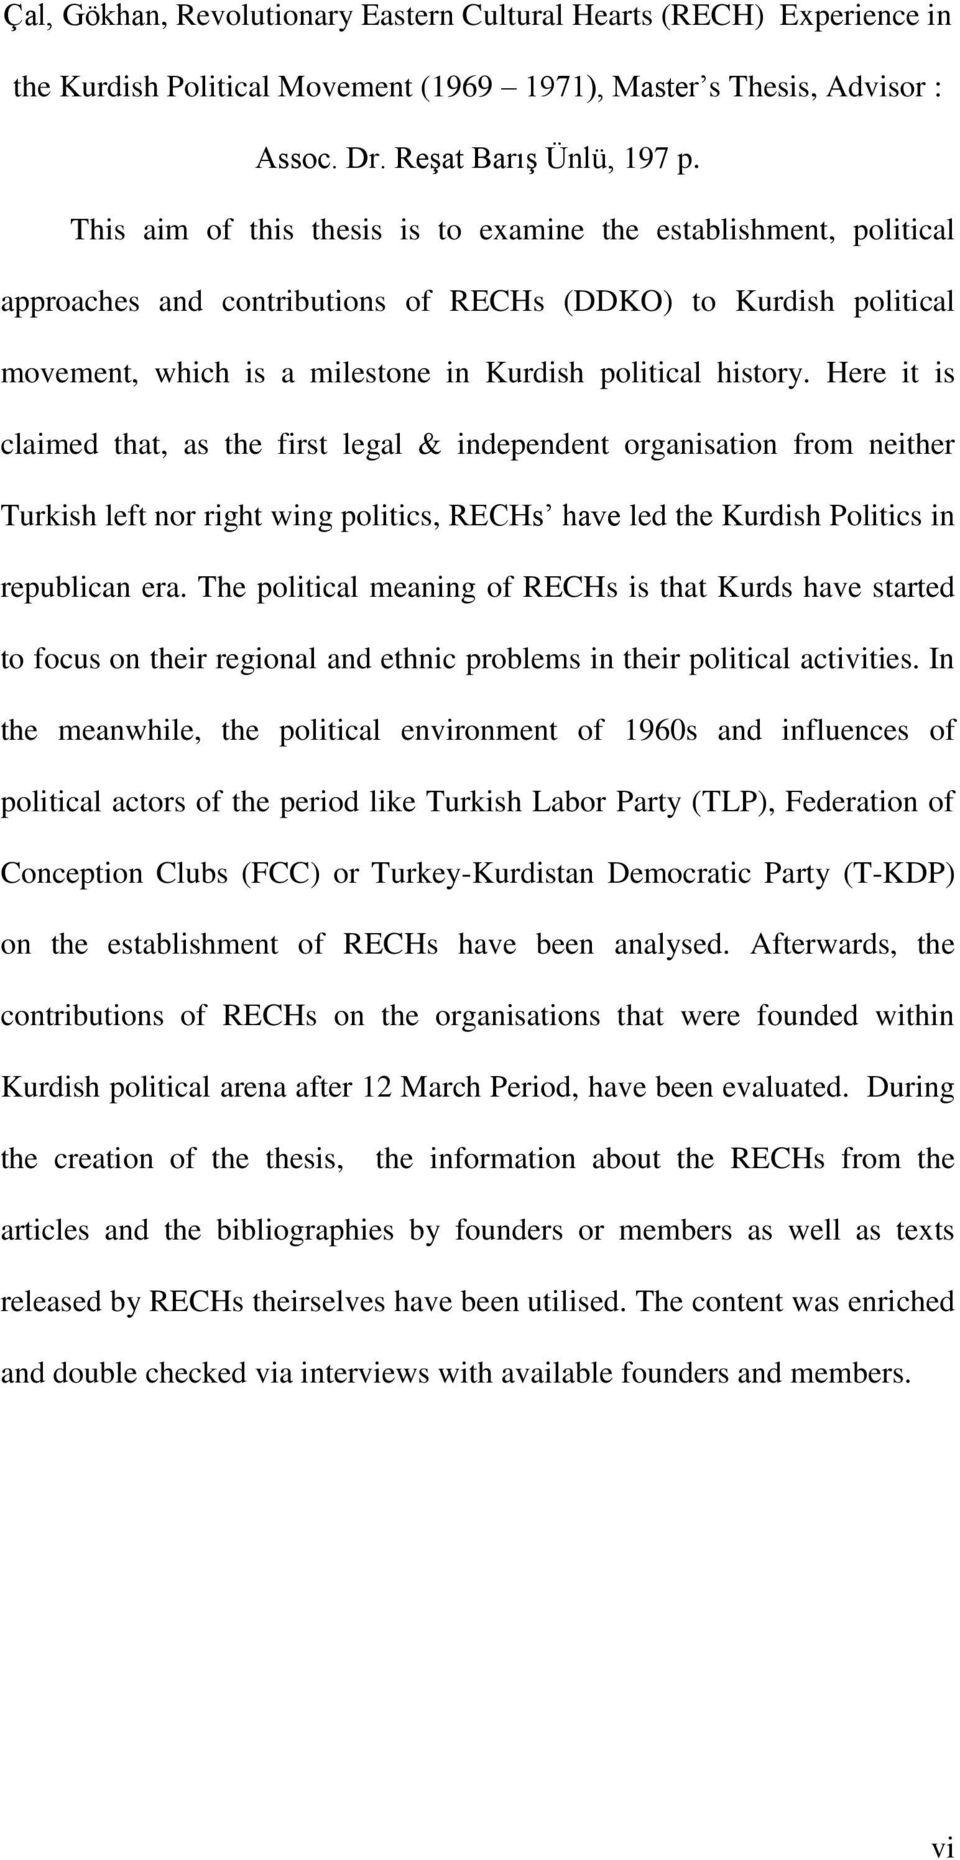 Here it is claimed that, as the first legal & independent organisation from neither Turkish left nor right wing politics, RECHs have led the Kurdish Politics in republican era.